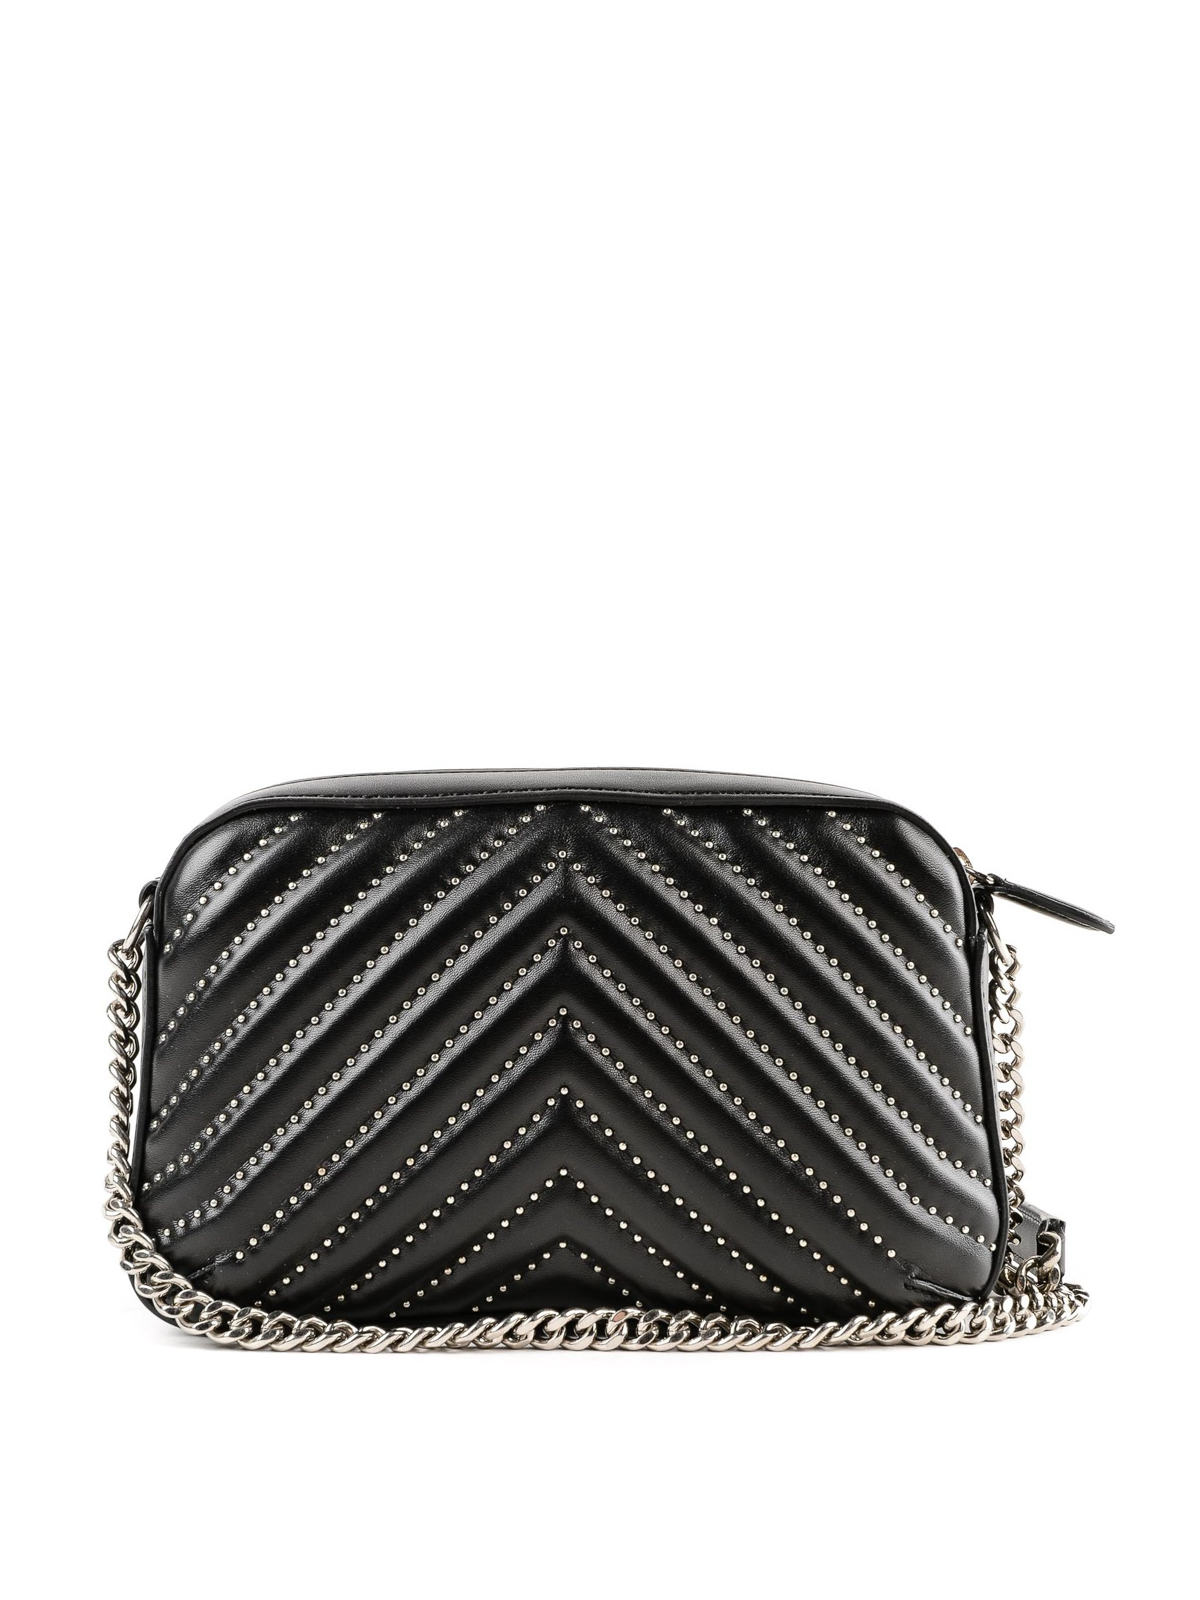 2227e6b7ea iKRIX STELLA McCARTNEY  cross body bags - Stella Star black matelassé small  camera bag